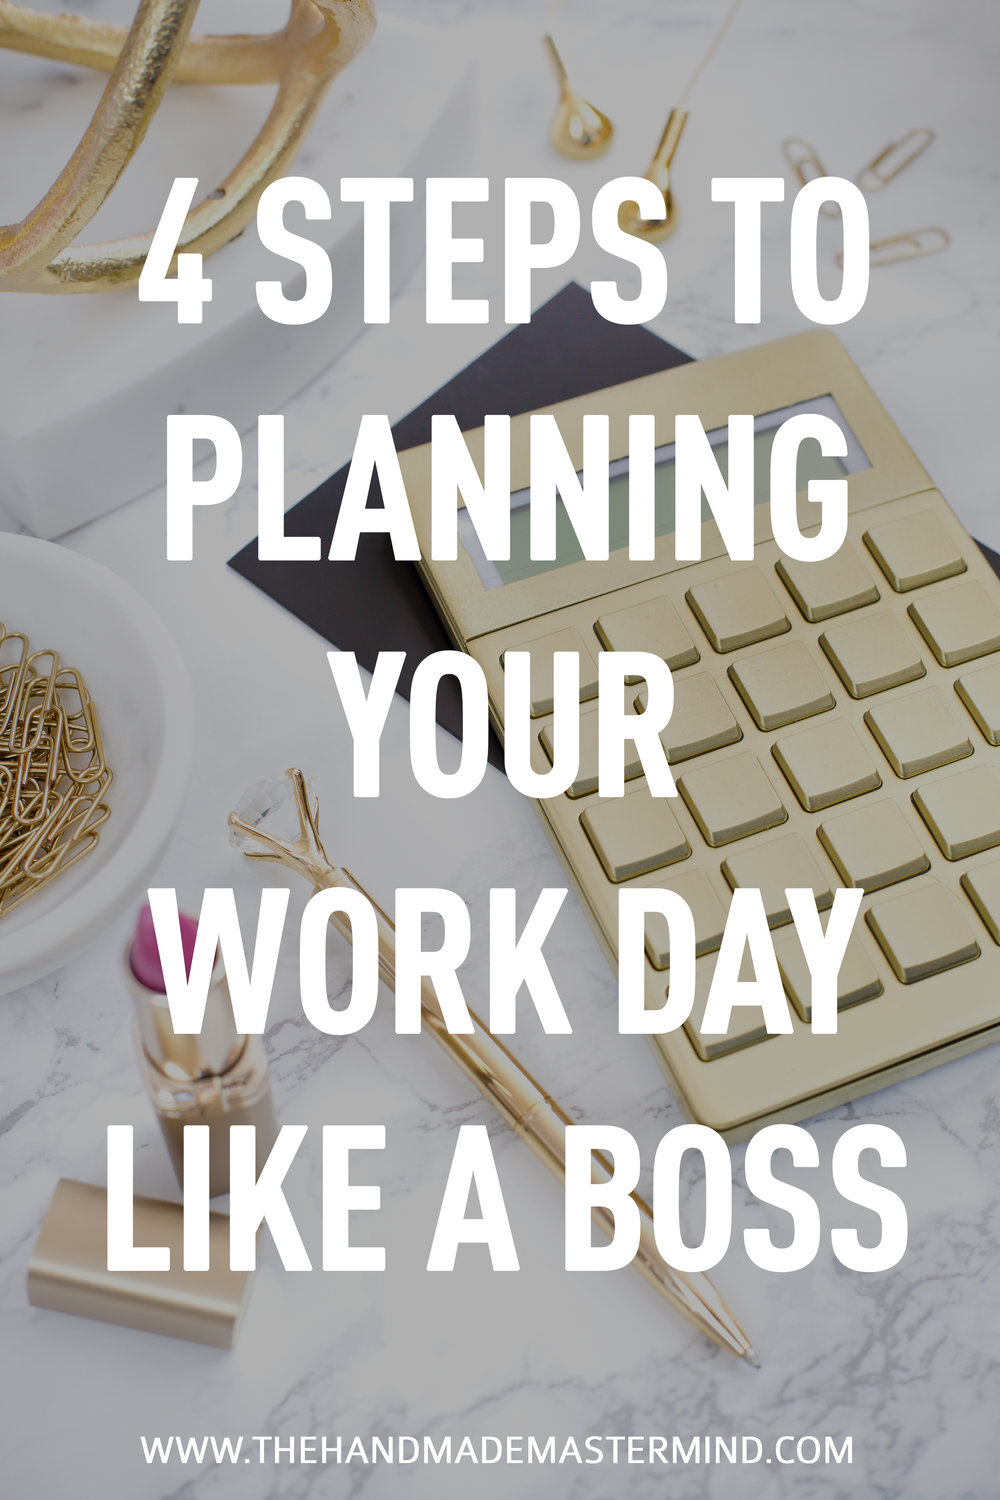 Ho5 Steps to planning your workday like a boss - The Handmade Mastermind